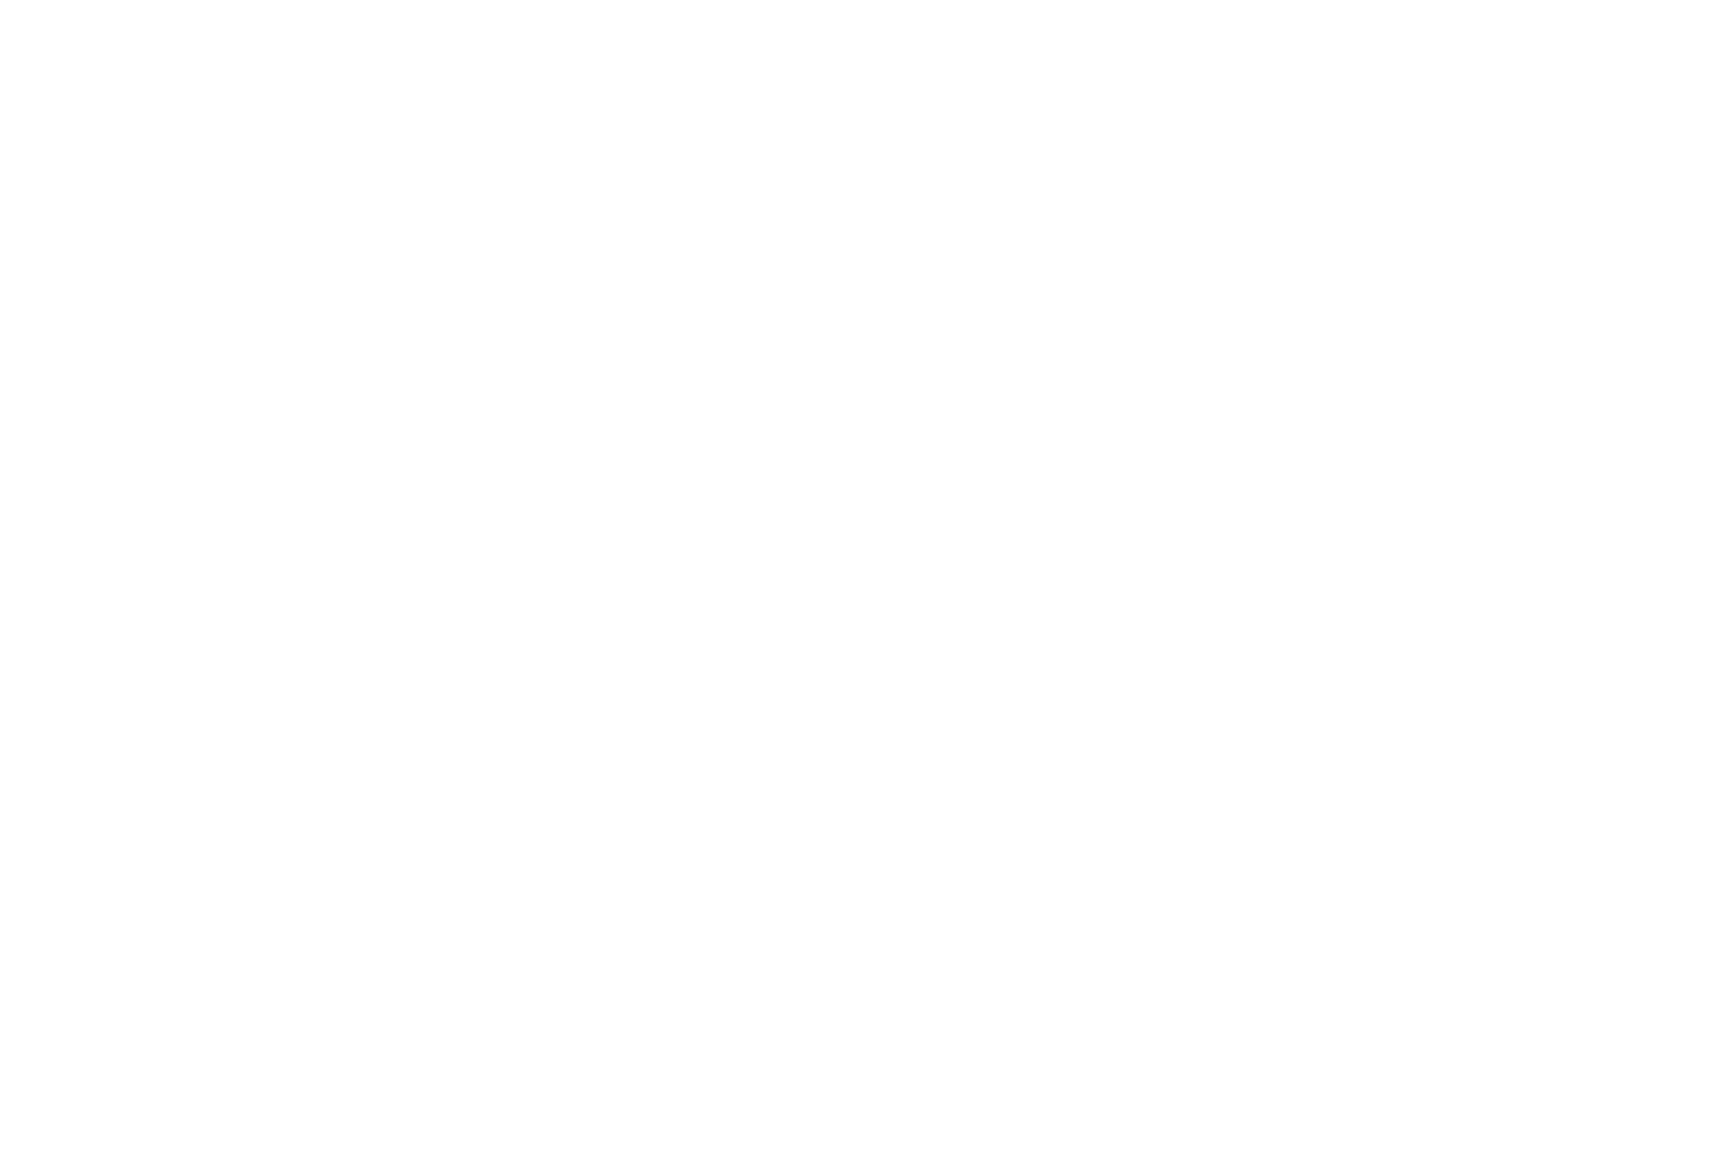 HONORABLE MENTION - Athens International Monthly Art Film Festival - 2021